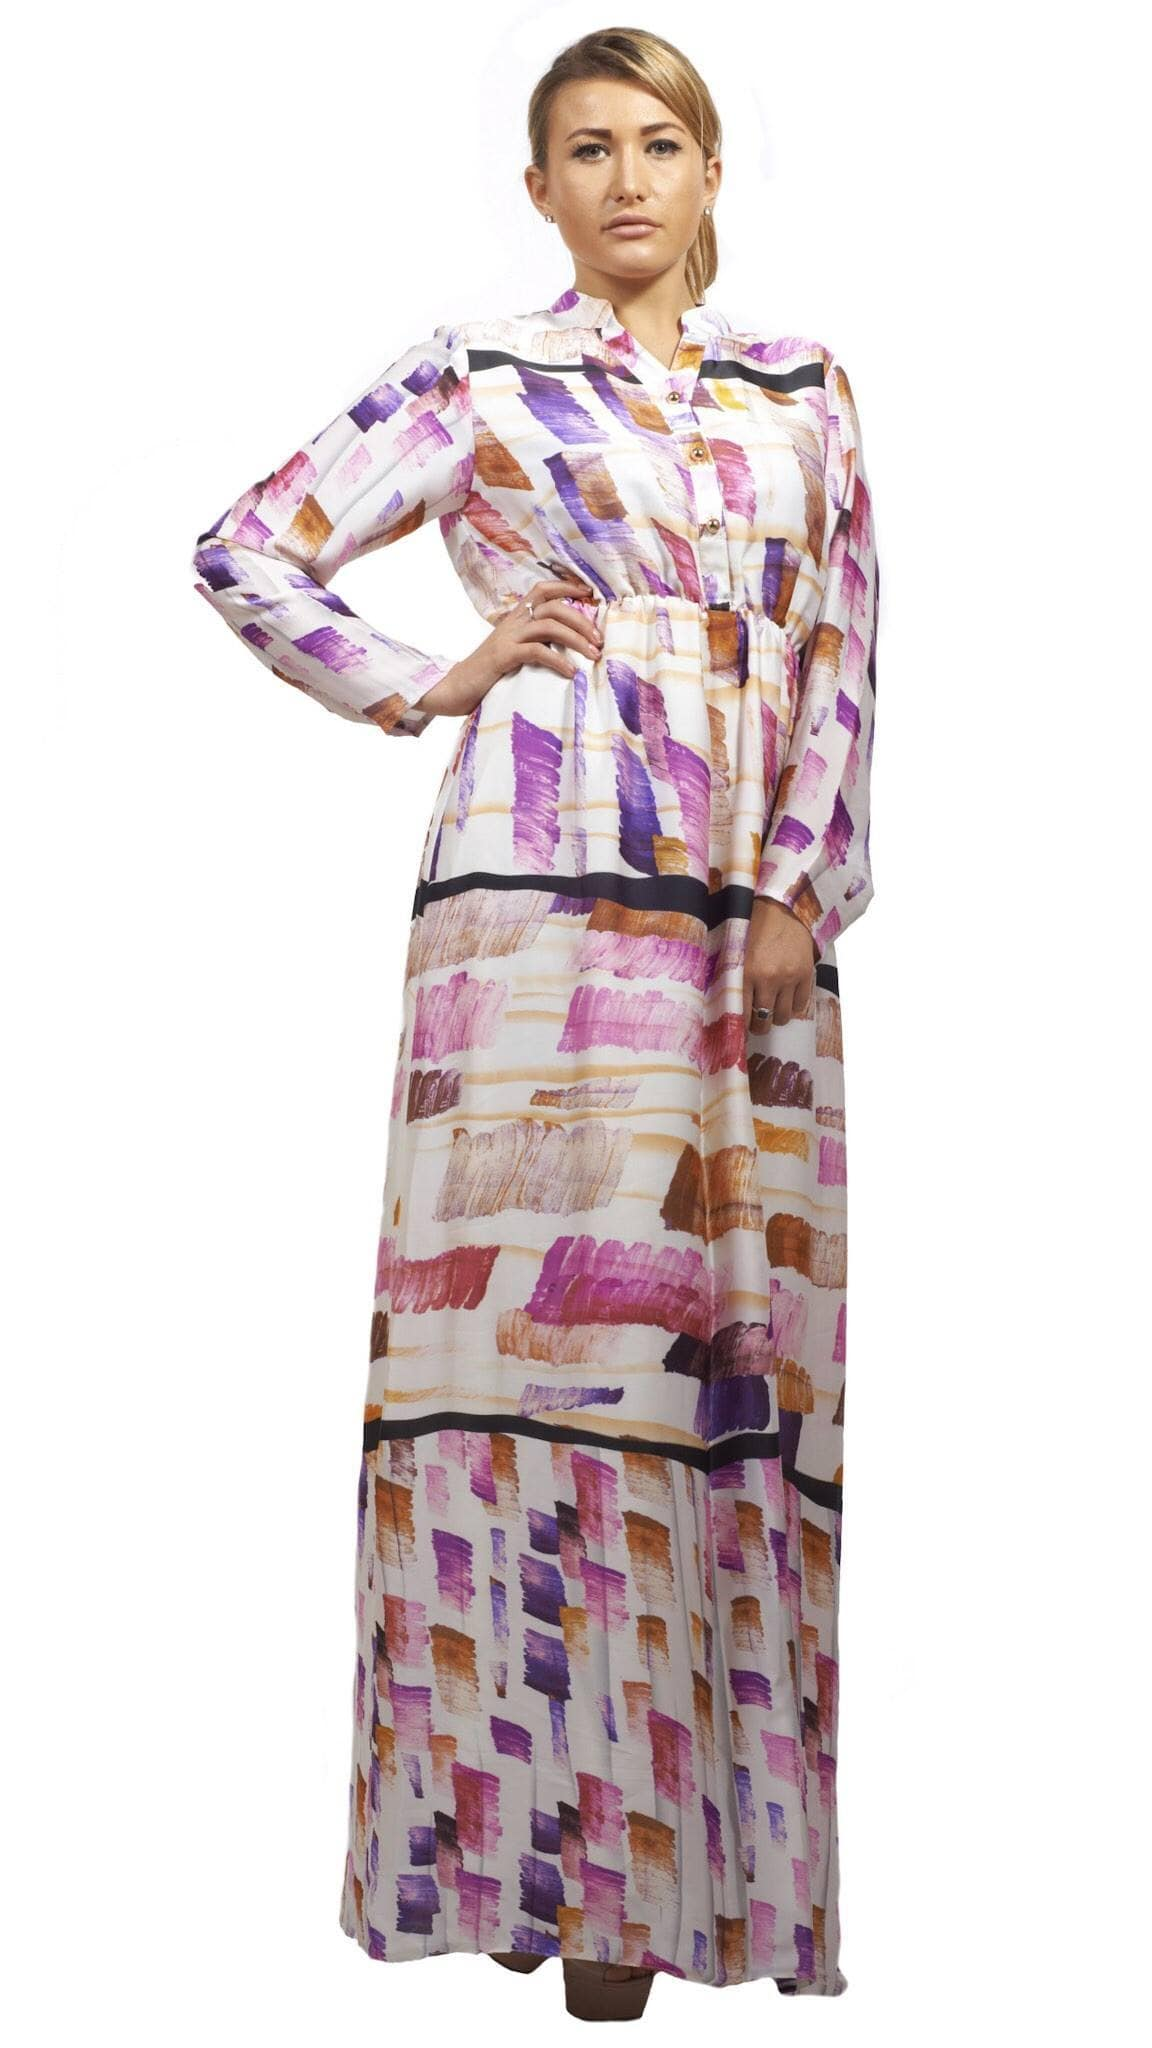 Shehna hussain Dress White Chalk Print Dress